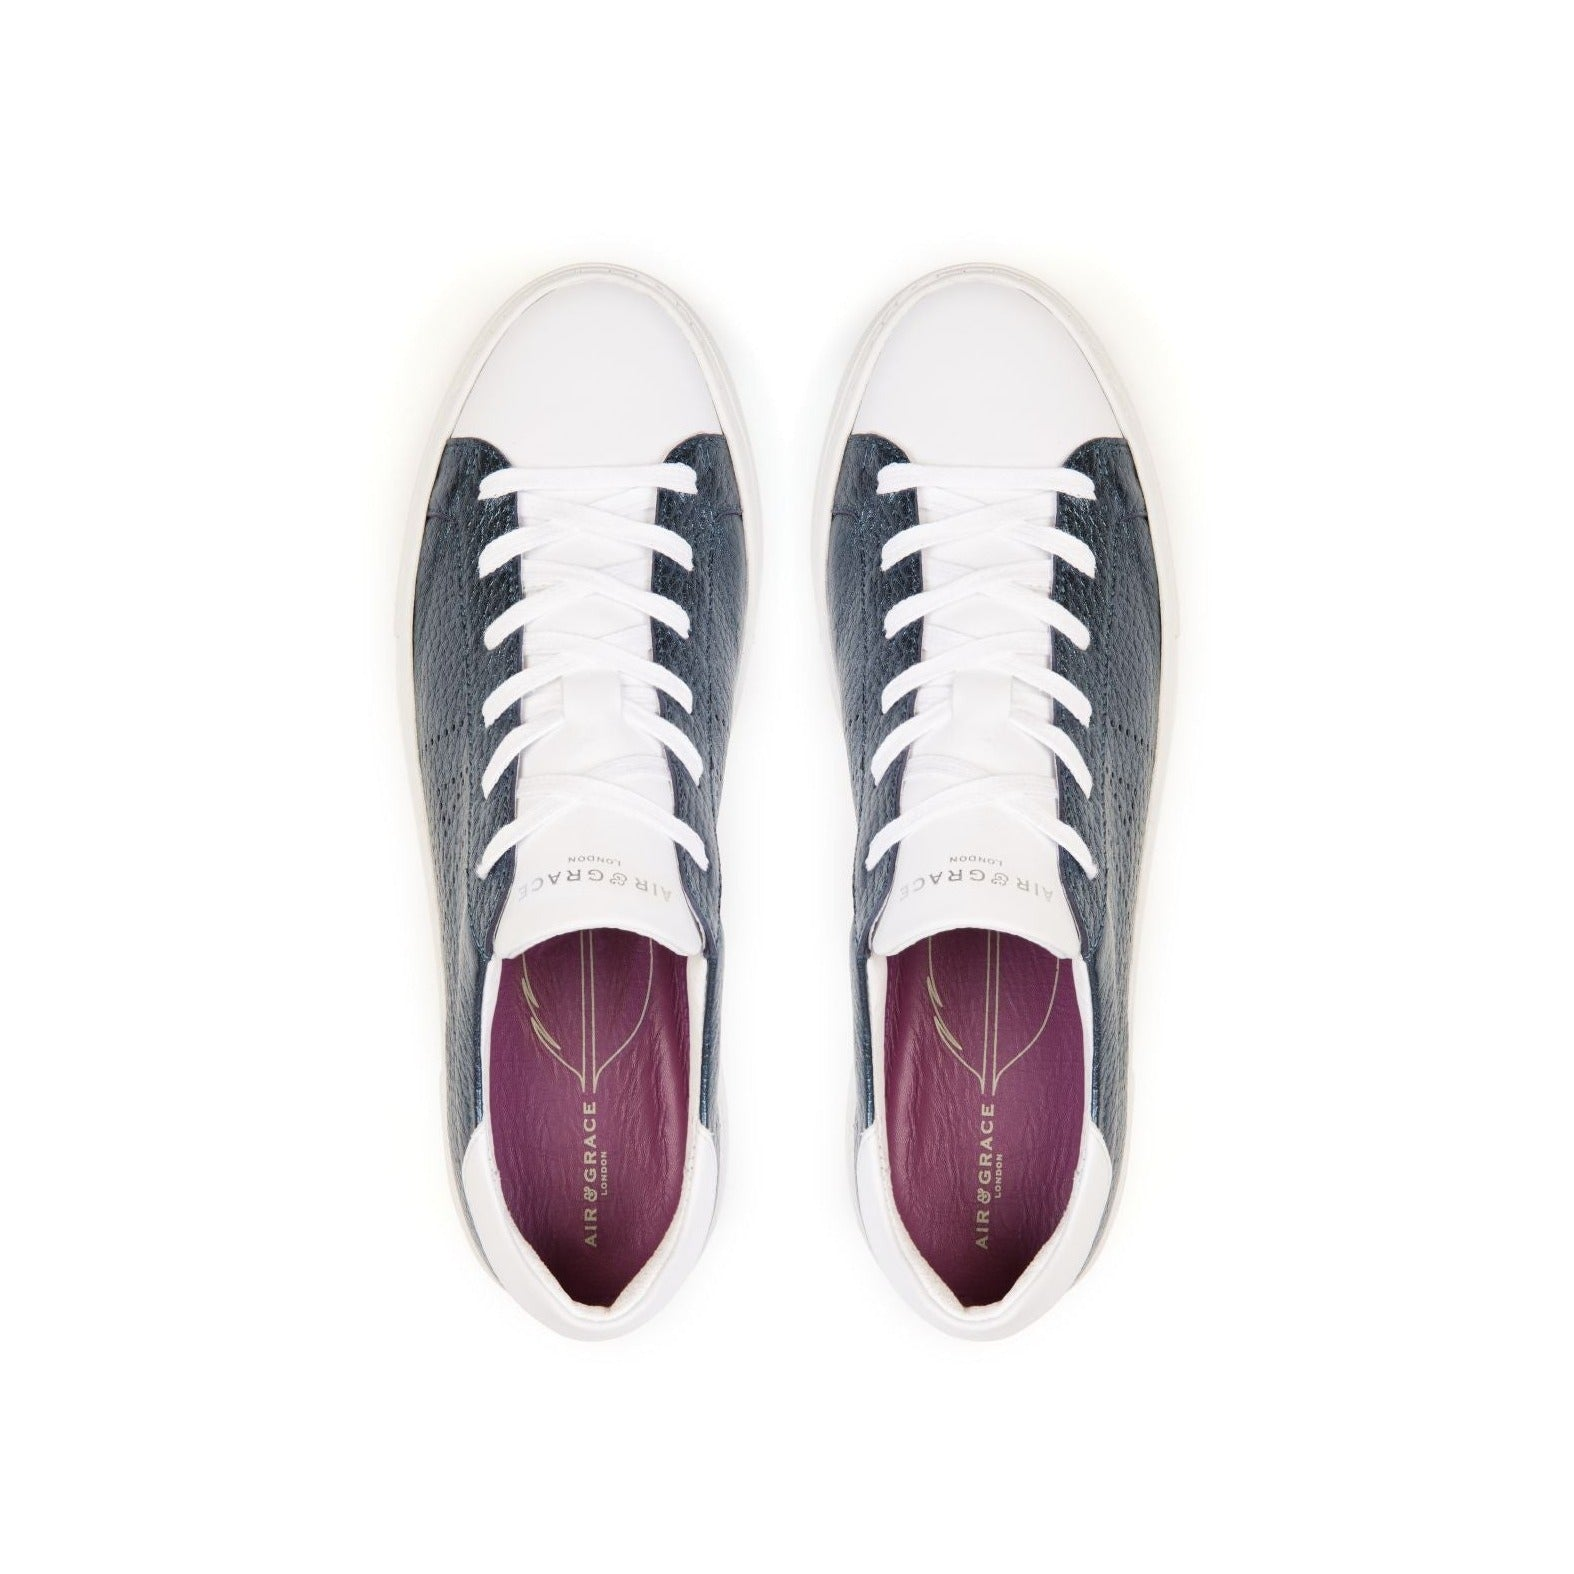 ROXY: NAVY METALLIC PLATFORM TRAINERS